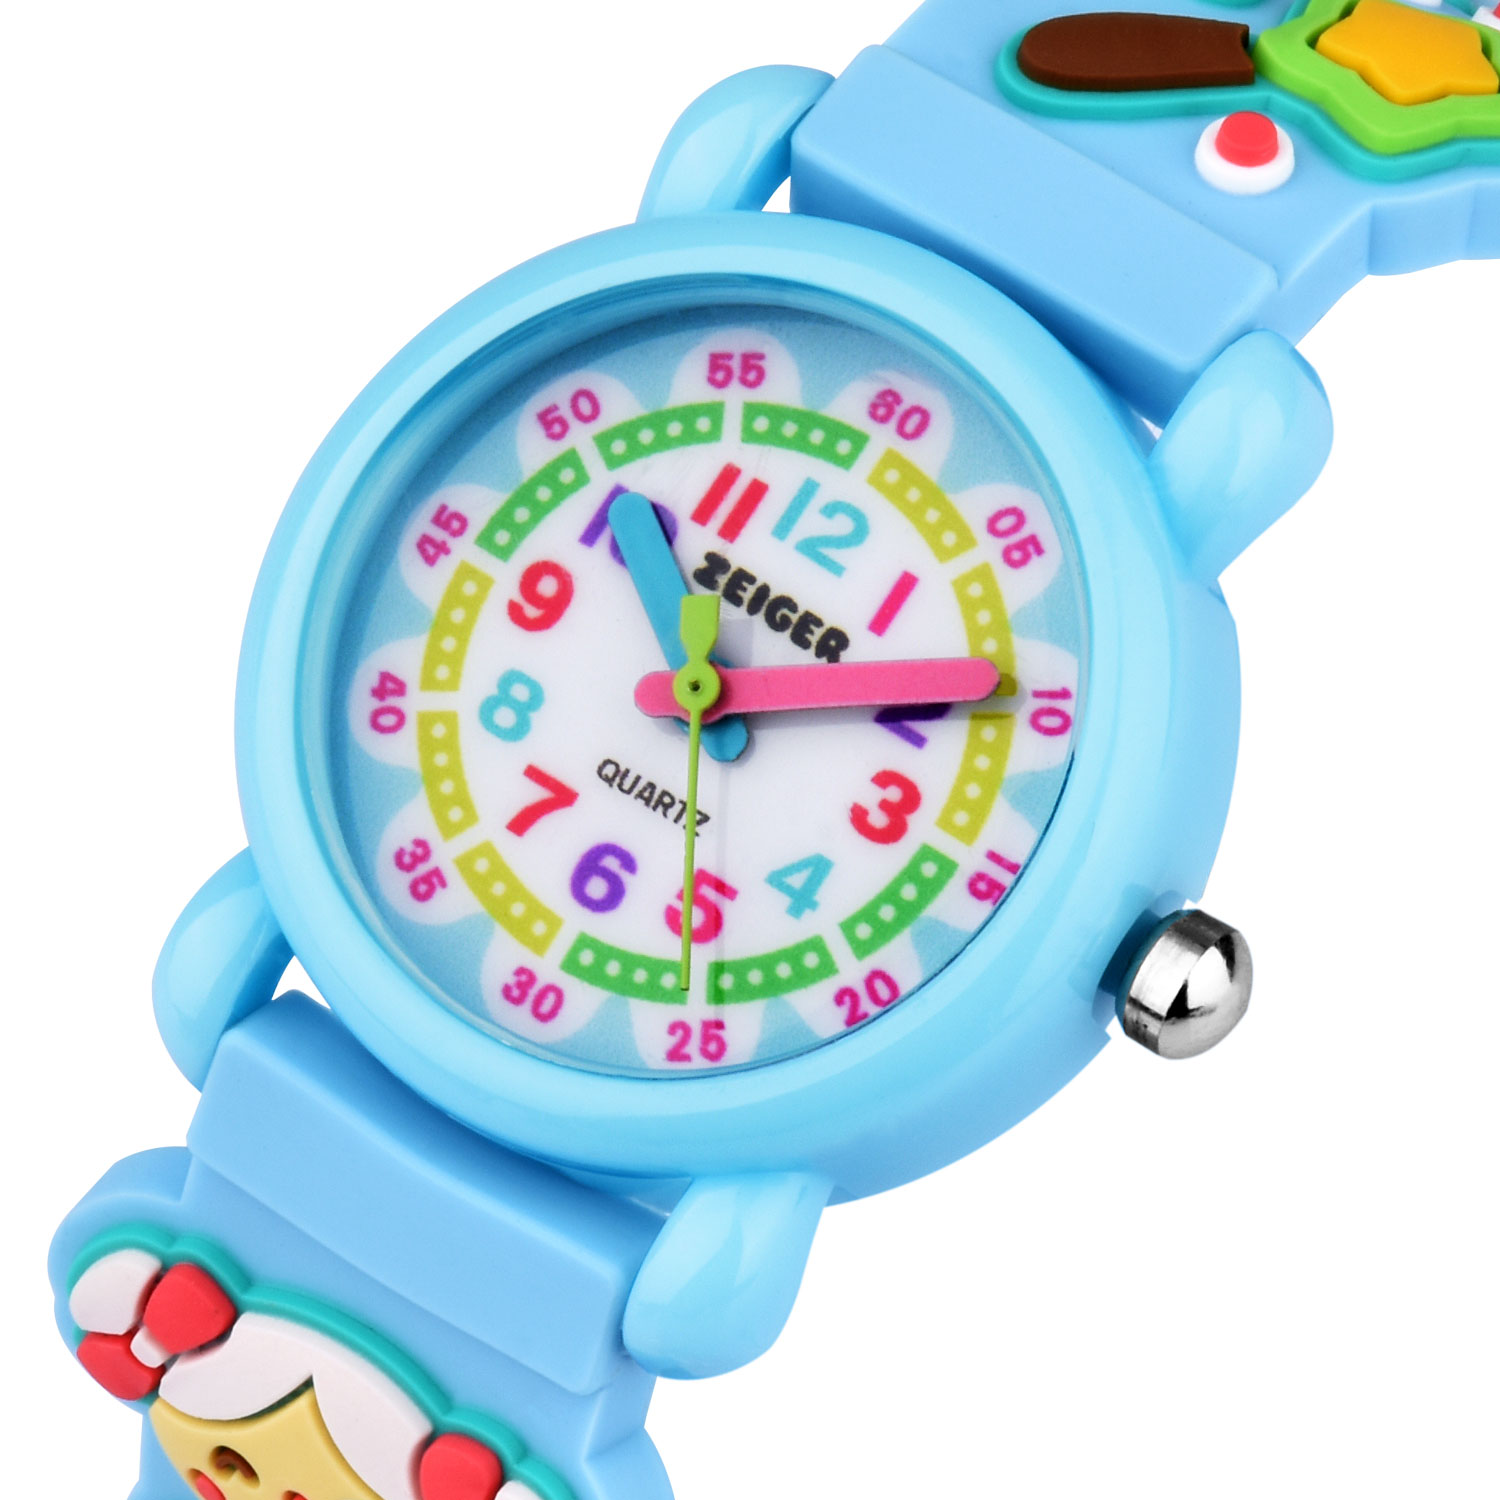 Toy watch for teens